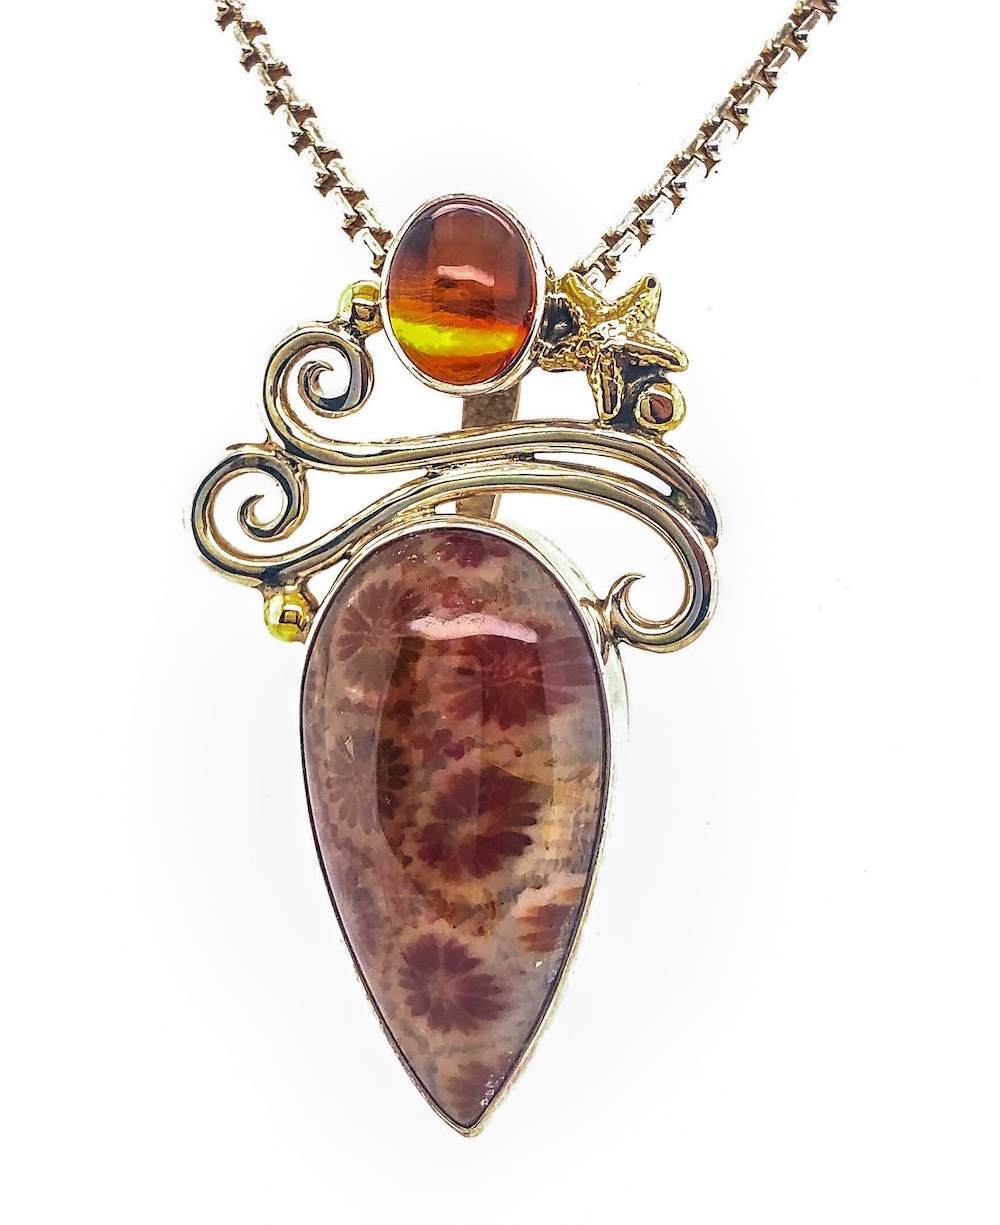 Fossilized Coral Necklace pendant